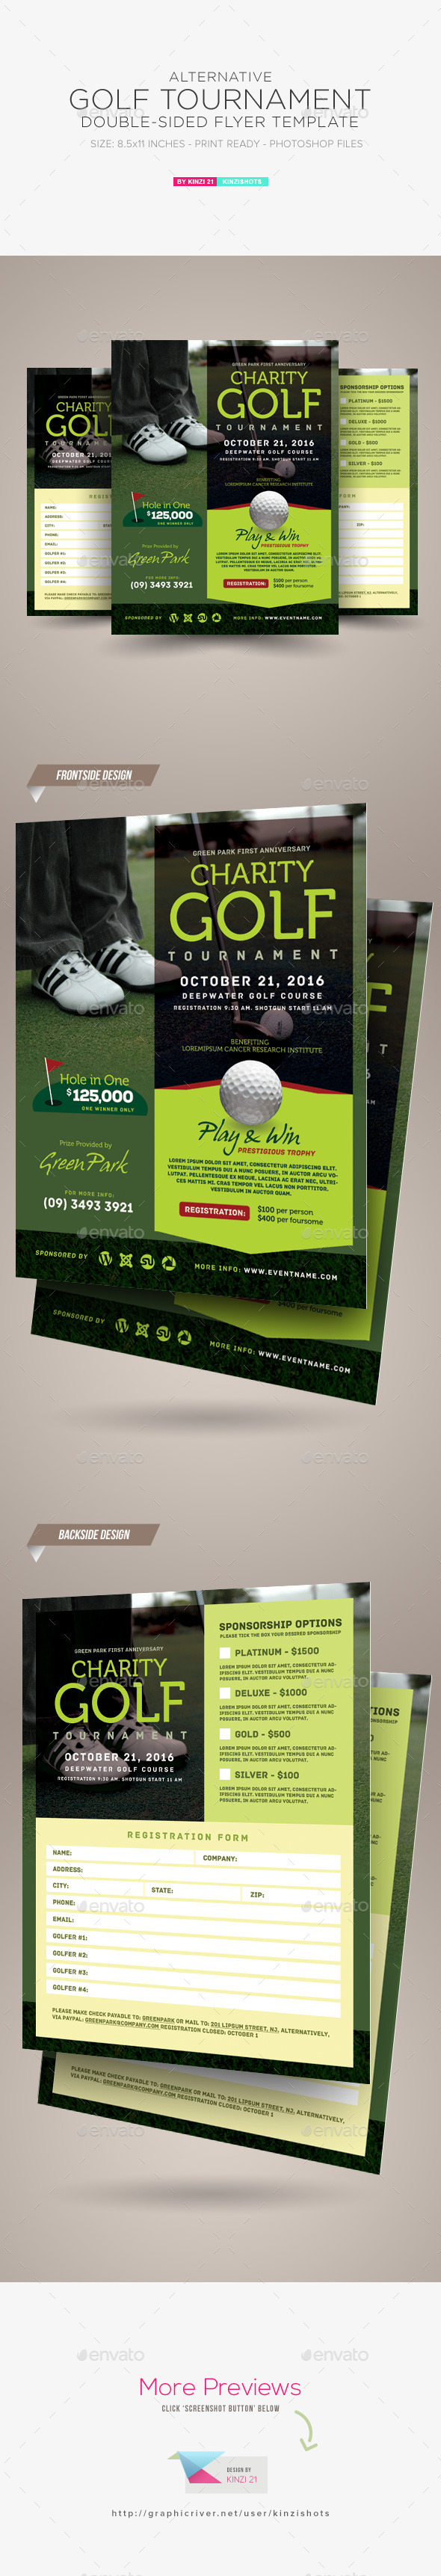 Golf tournament double sided flyer by kinzishots for Golf tournament program template